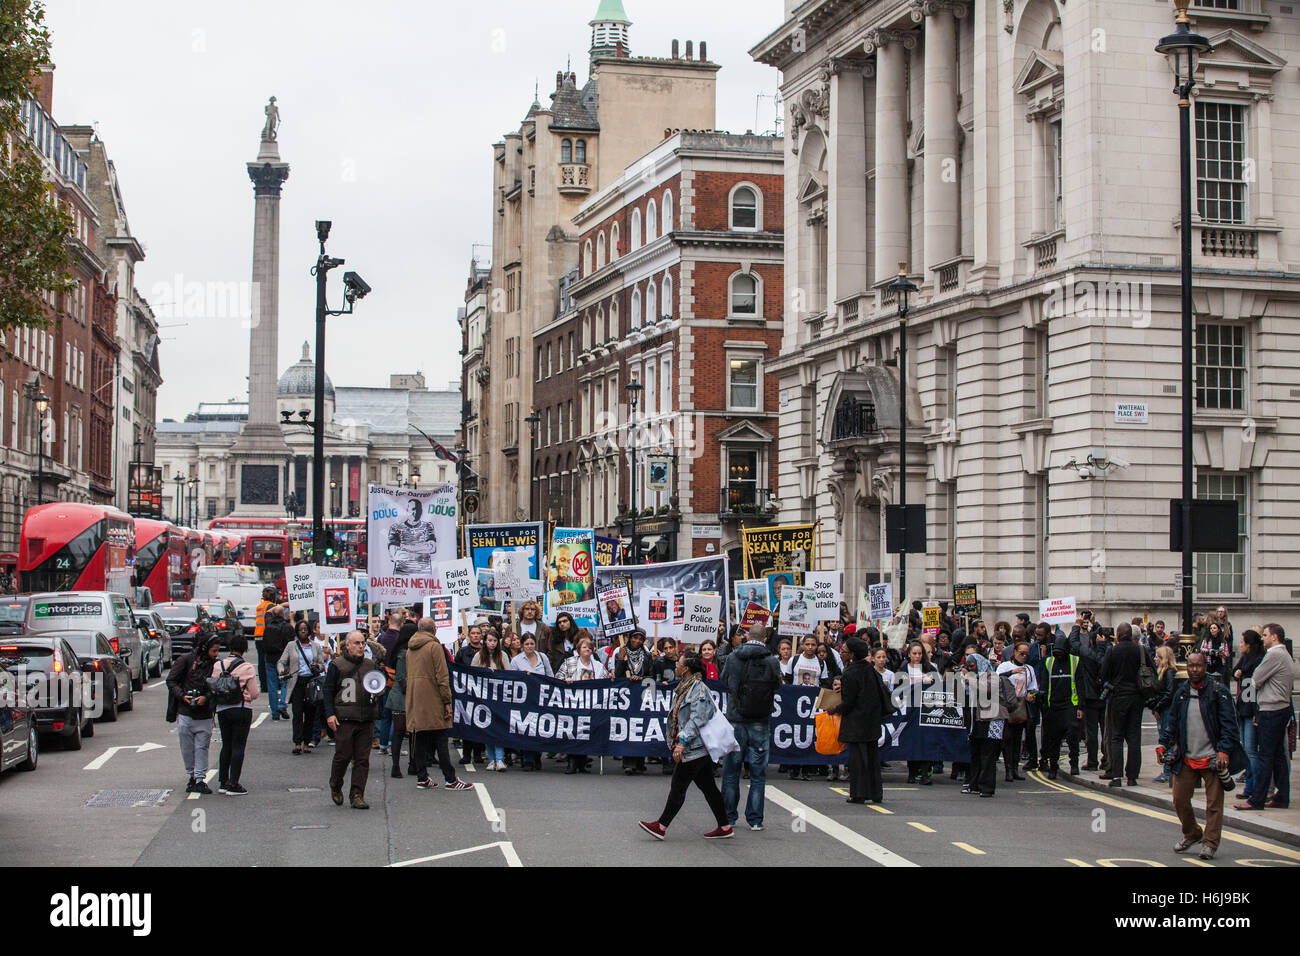 London, UK. 29th October, 2016. Campaigners from the United Families and Friends Campaign (UFFC) hold their annual - Stock Image